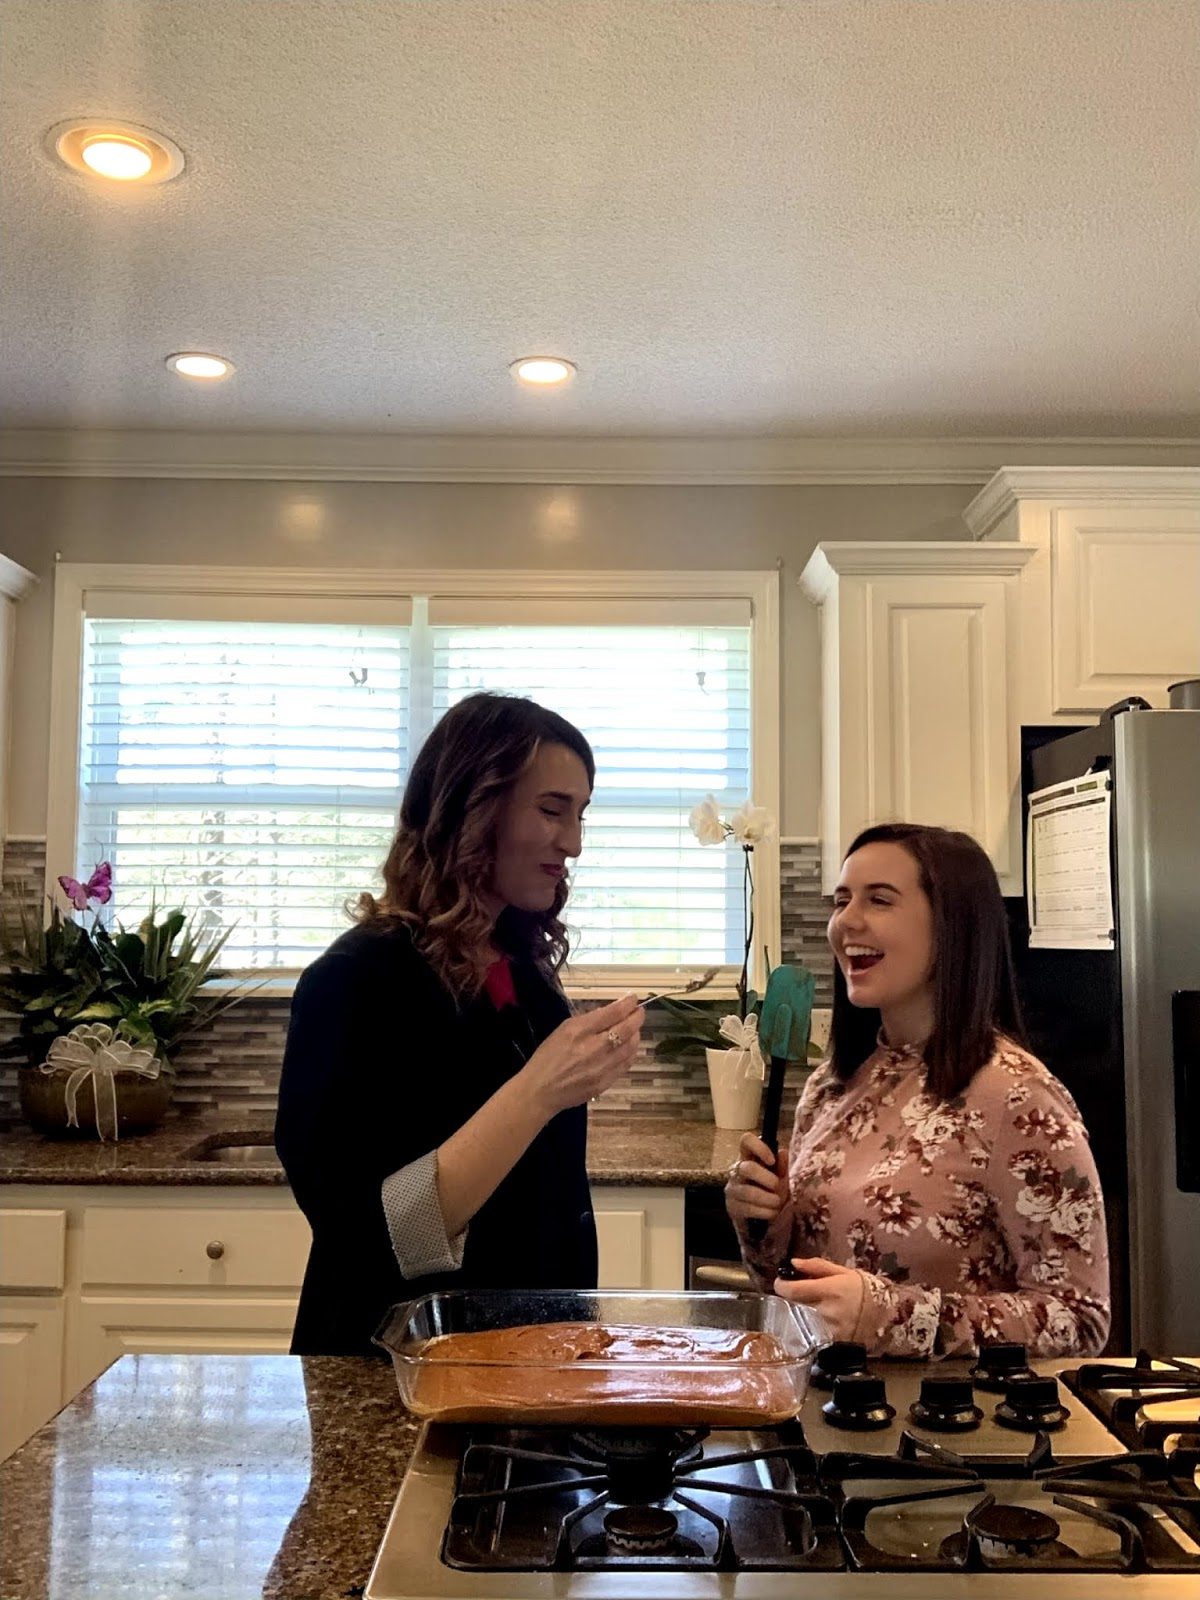 Laura Mintz of Illuminate Blog Reflects on Losing Her Mom and Makes Homemade Brownies with her daughter